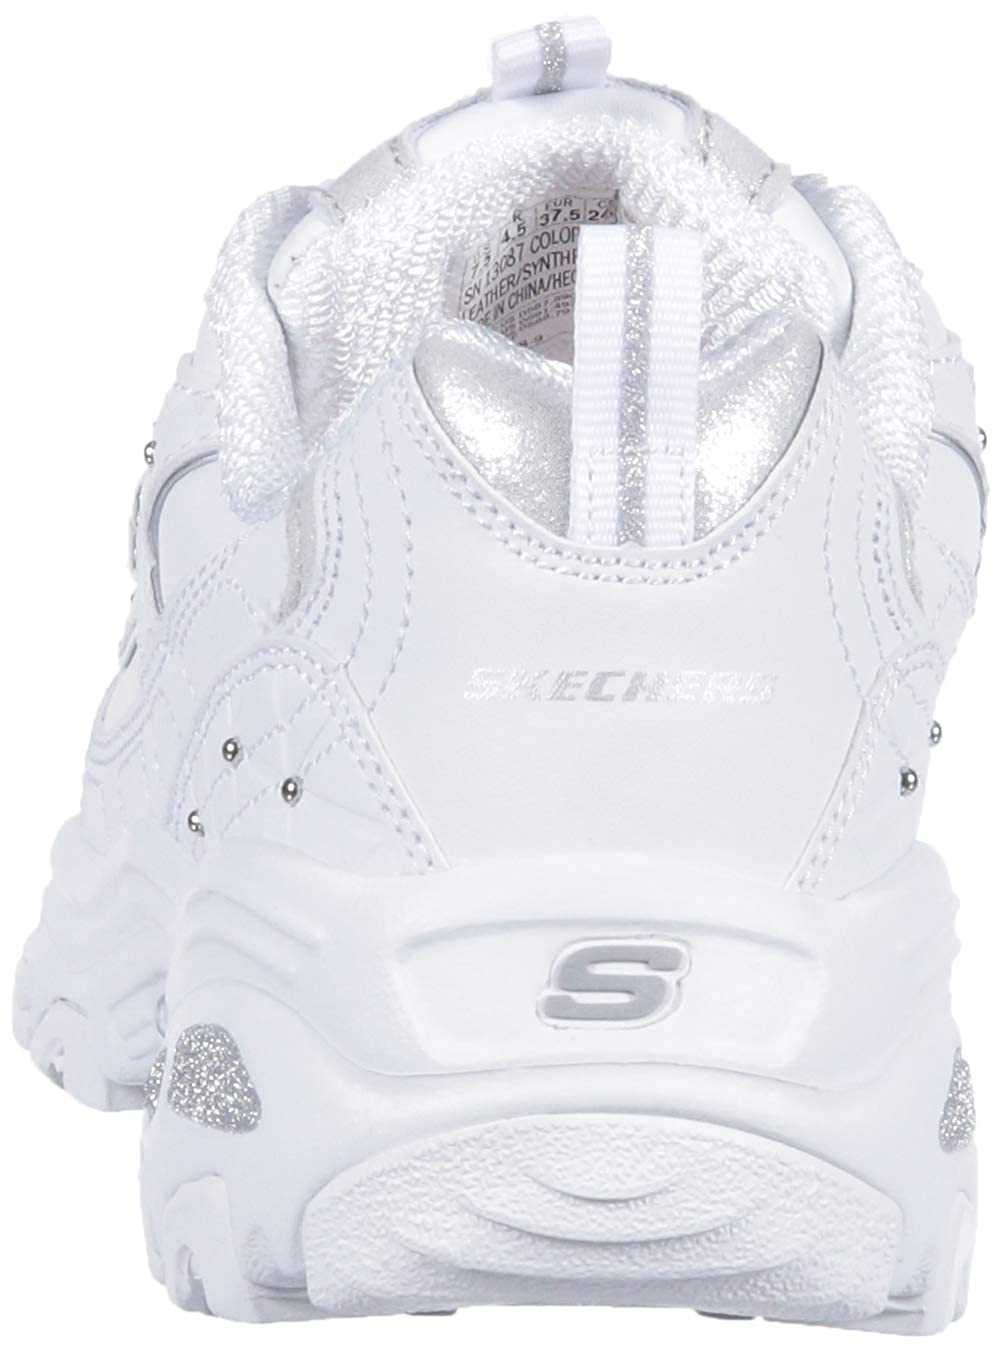 Skechers-D-039-Lites-Women-039-s-Casual-Lightweight-Fashion-Sneakers-Athletic-Shoes thumbnail 73